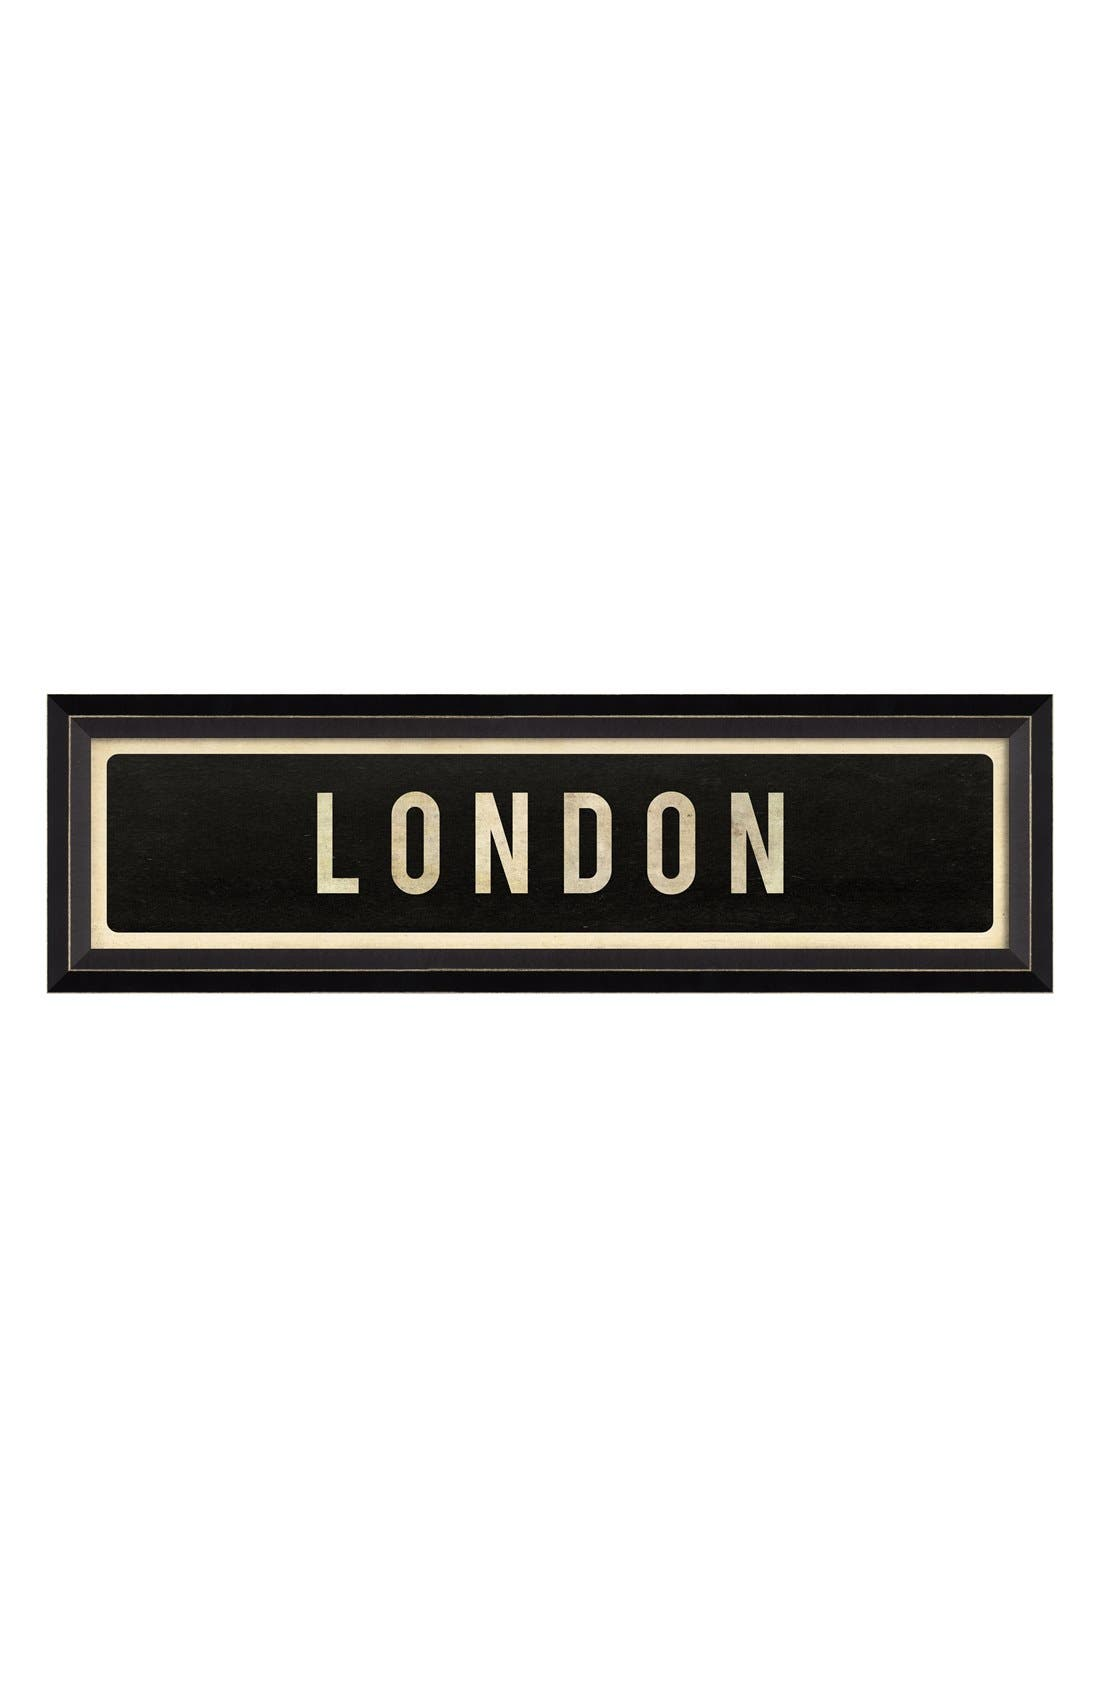 Main Image - Spicher and Company 'London' Vintage Look Street Sign Artwork